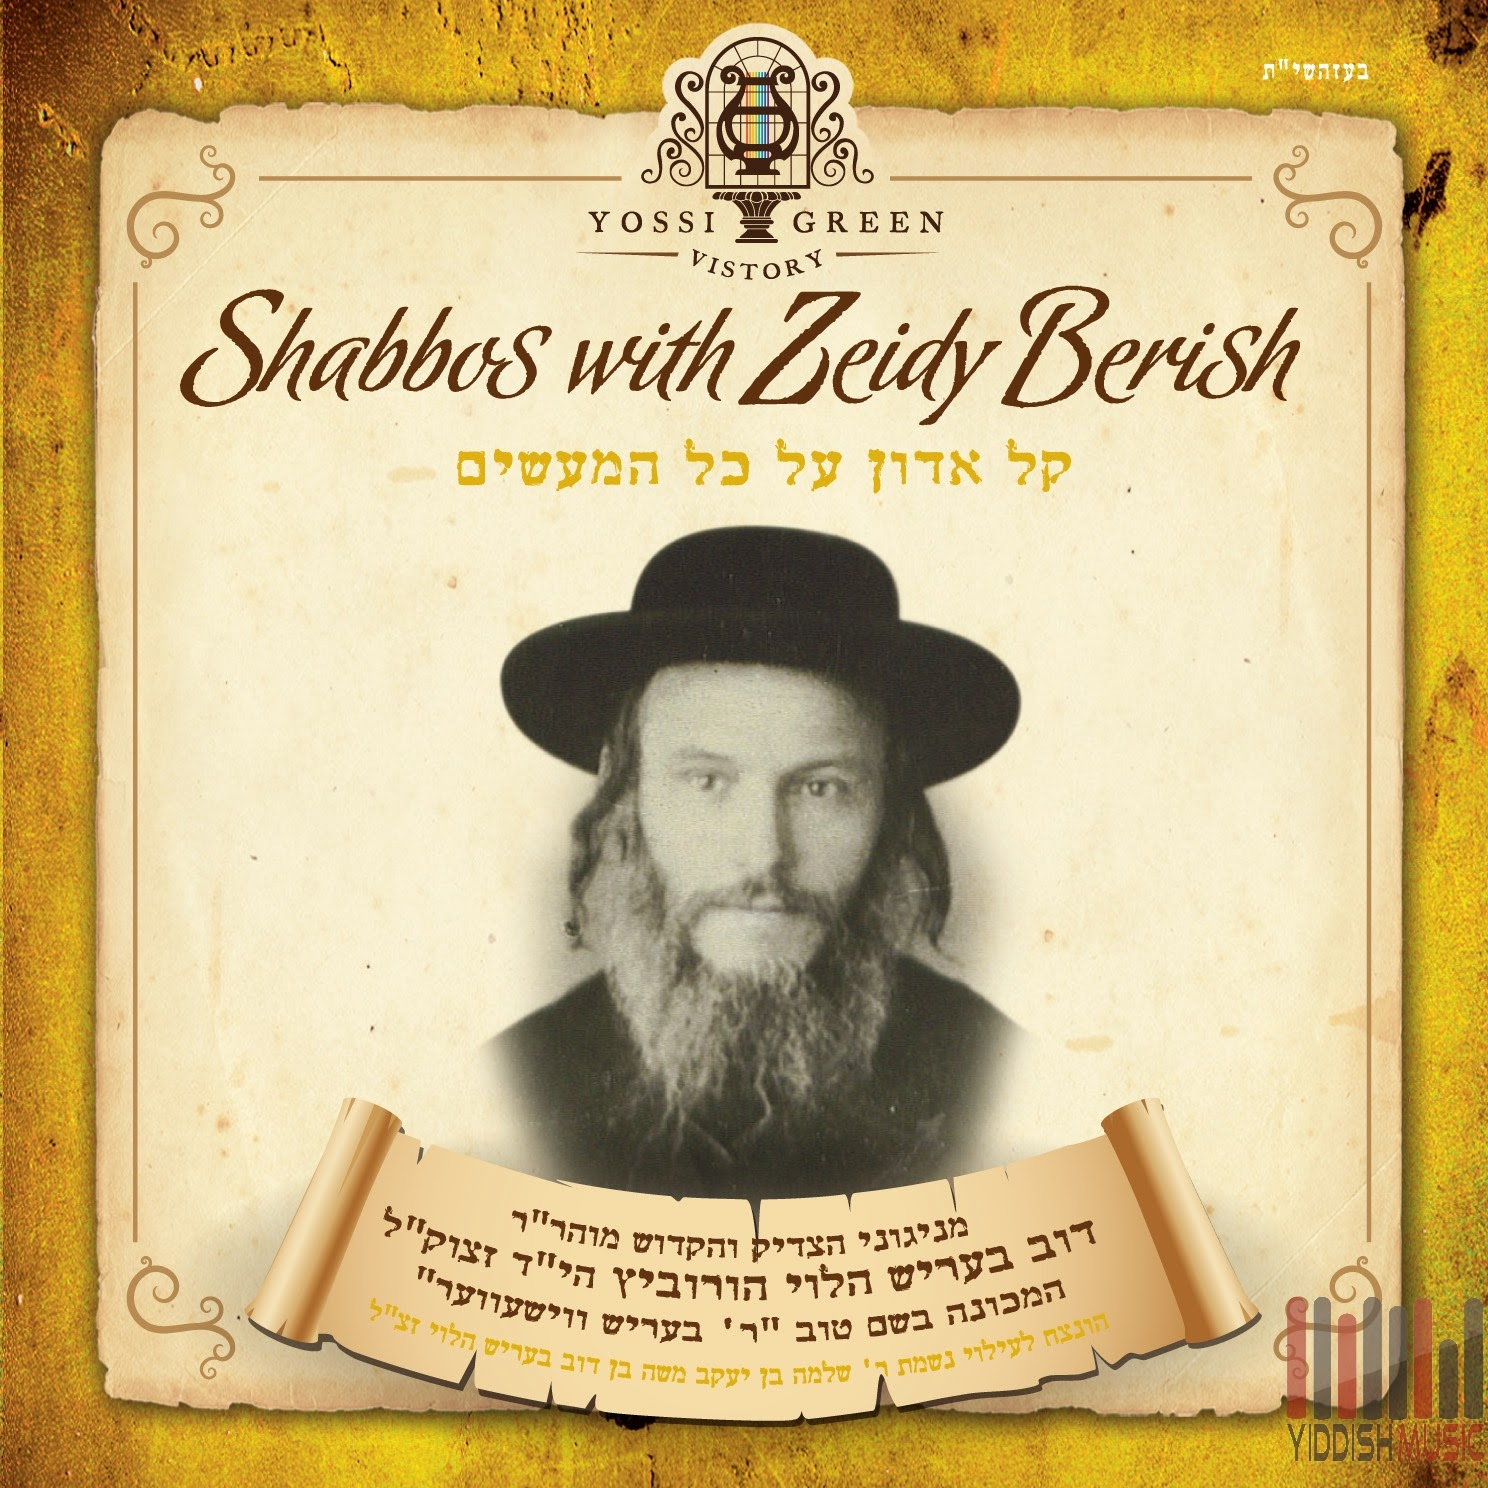 Yossi Green Vistory - Shabbos with Zeidy Berish [1-6] (2014)